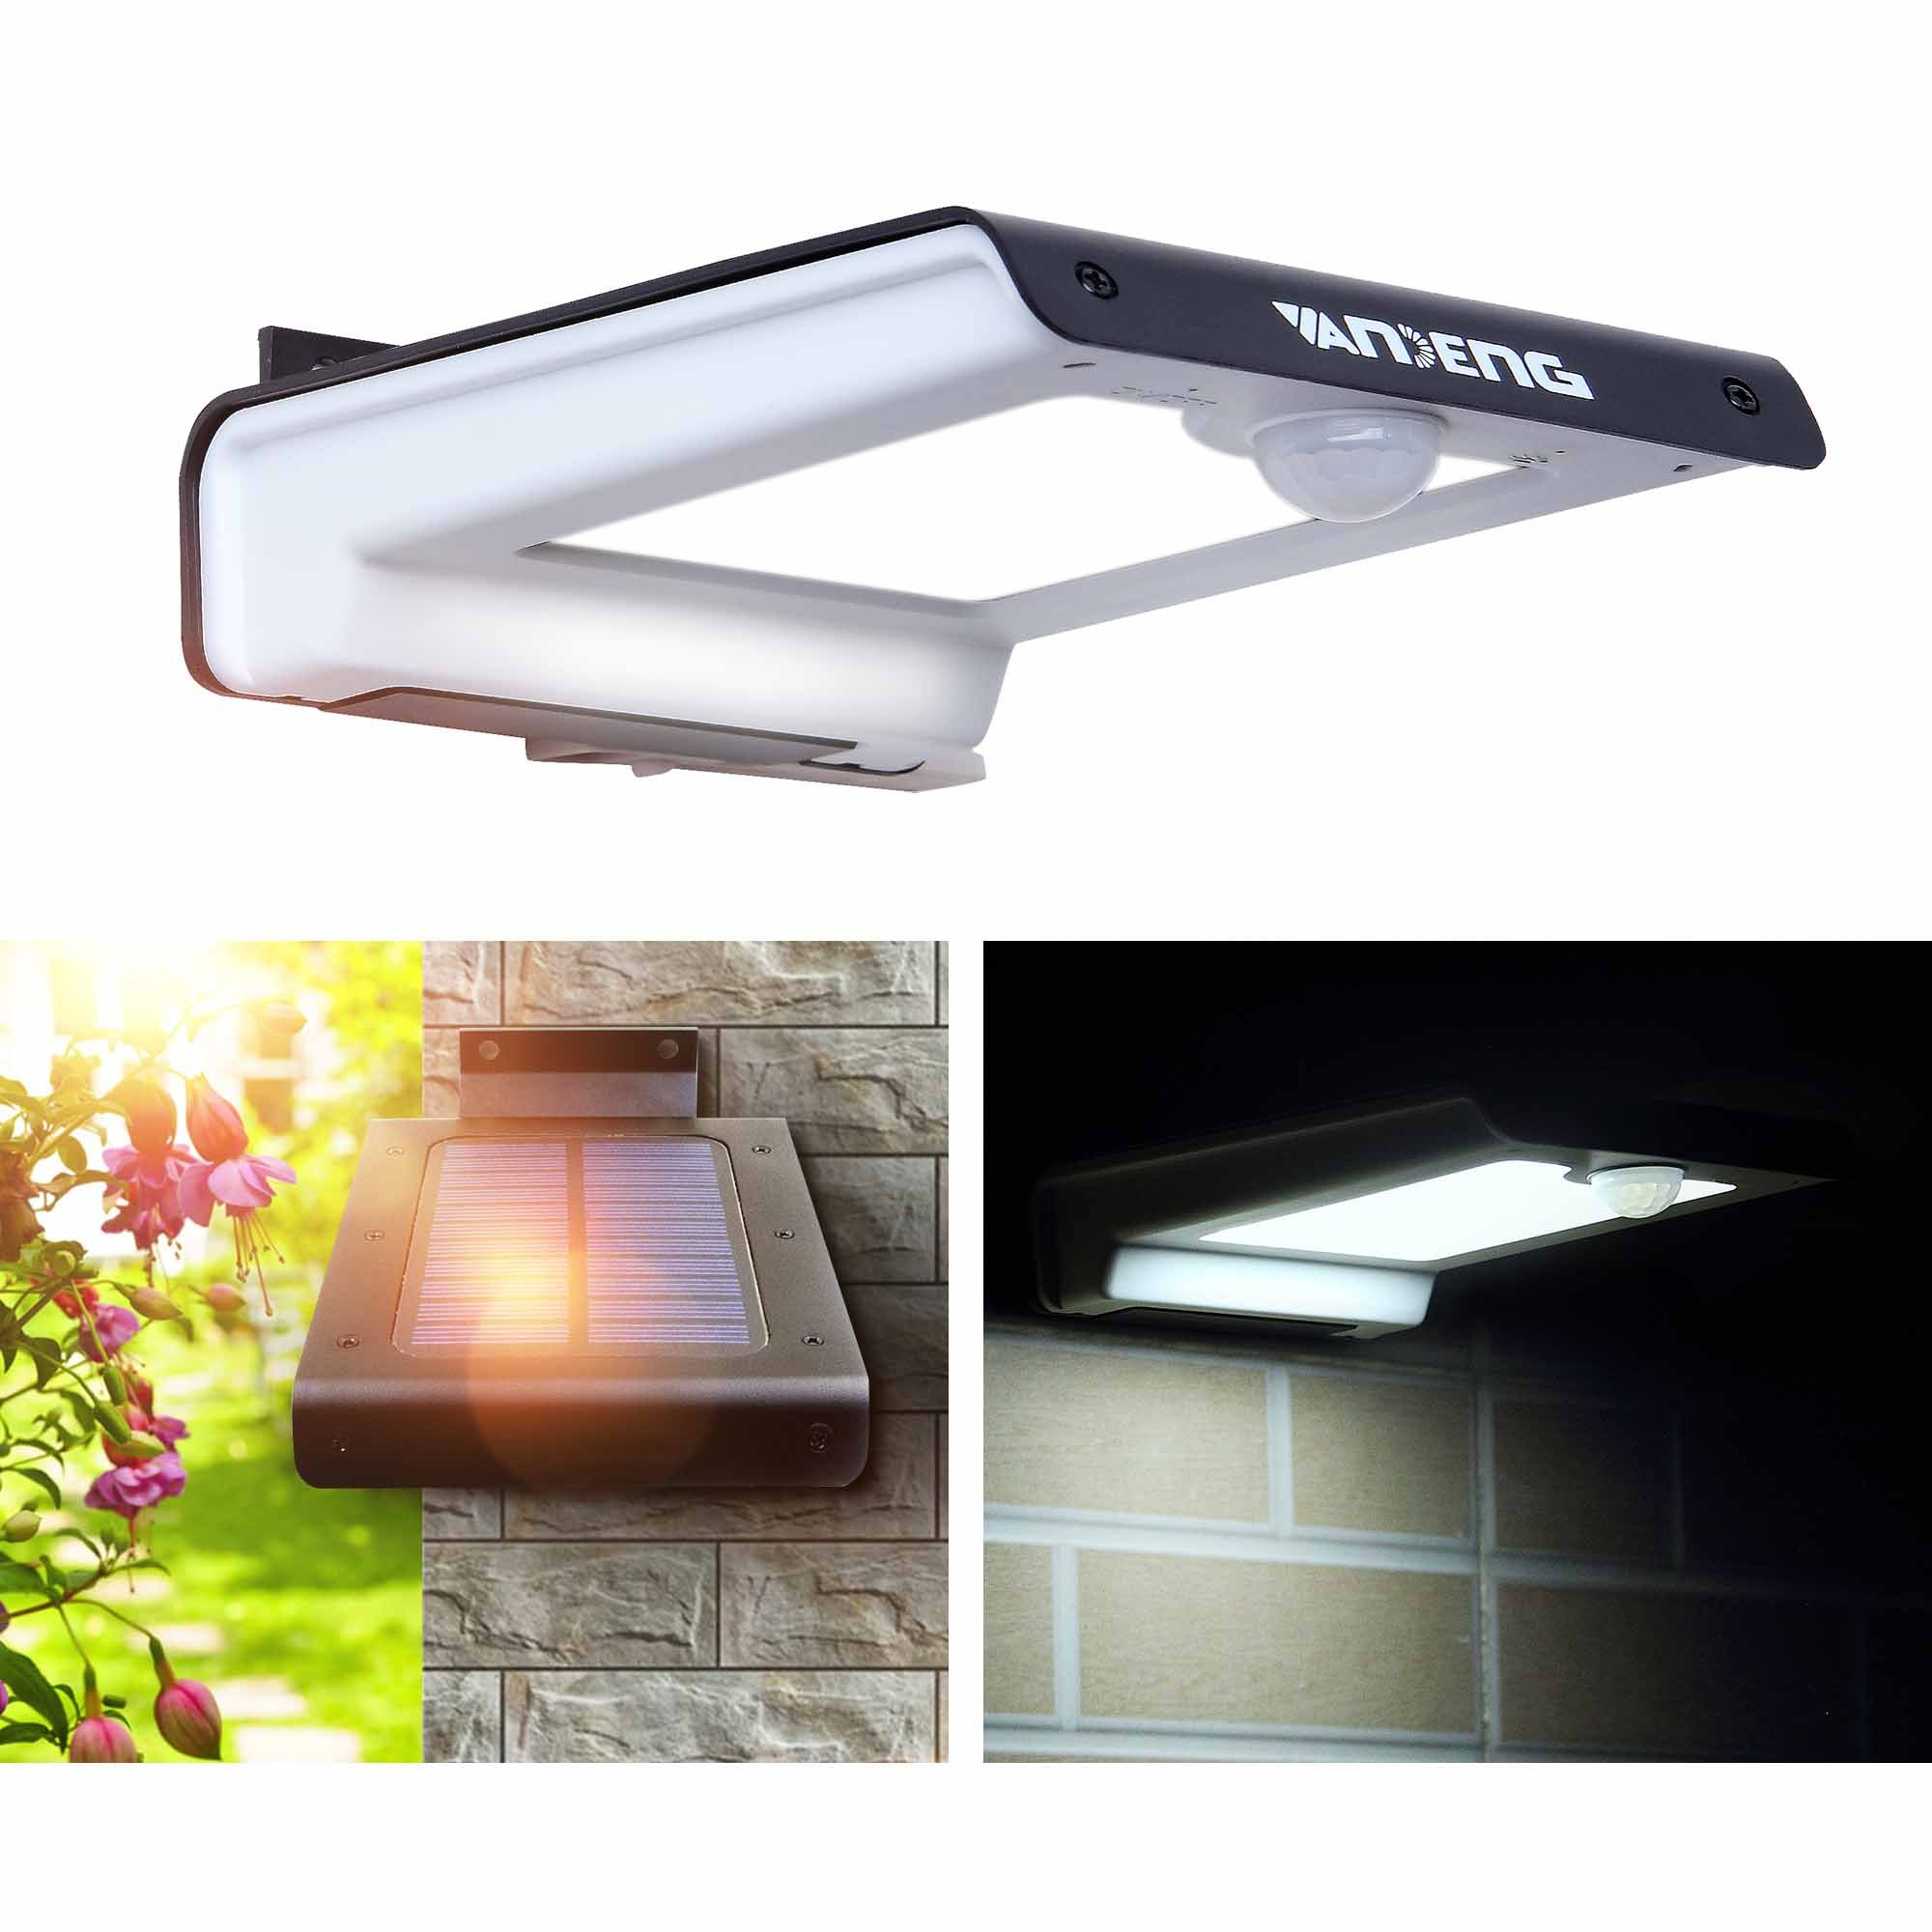 Solar Lights Outdoor,Vandeng Super Bright 32 LED Solar Powered Motion Sensor Waterproof Security Wall Lamp for Pathway Porch Patio Garden Step Pond